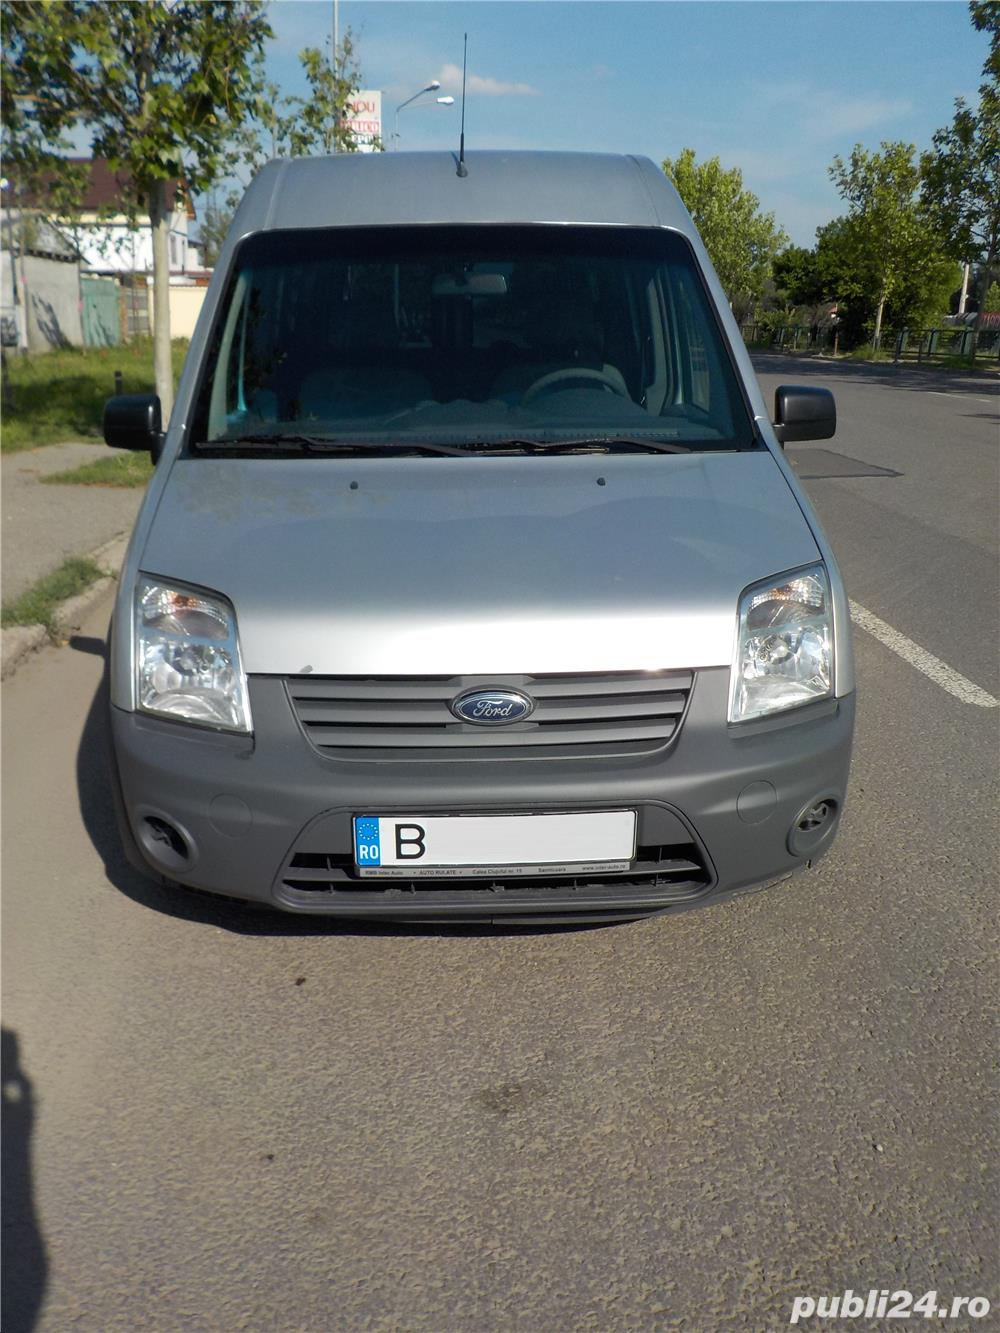 Ford Tourneo Connect 2012, inalta,